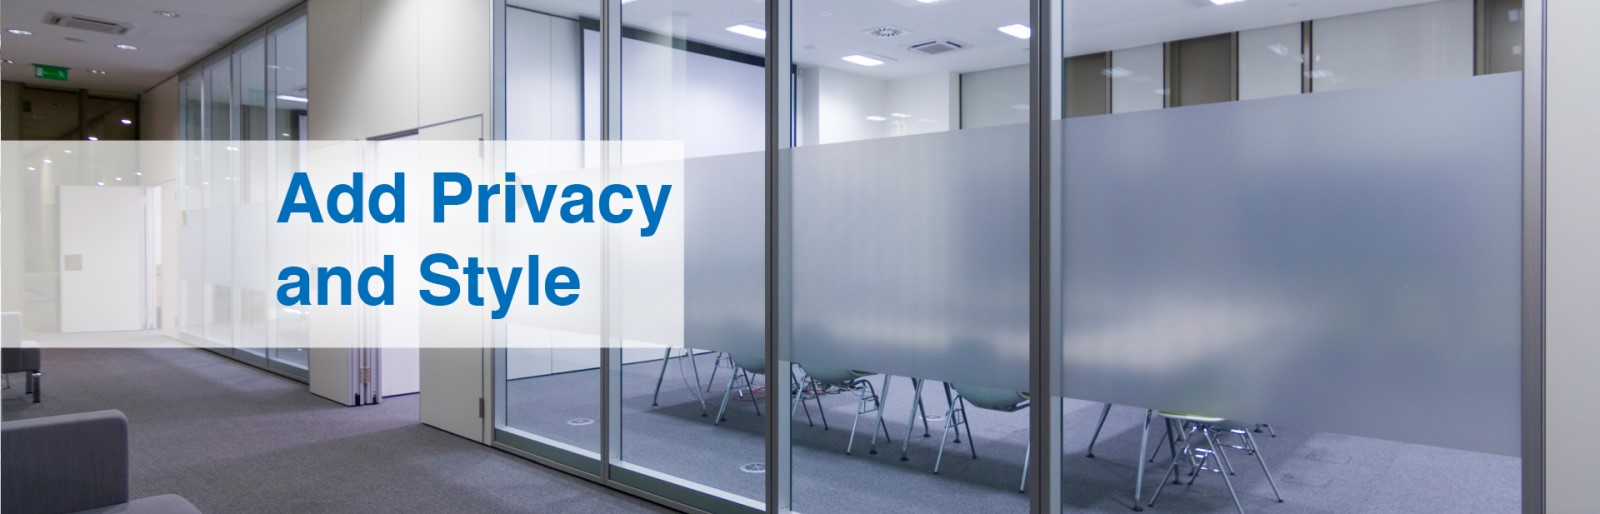 Add Privacy and Style